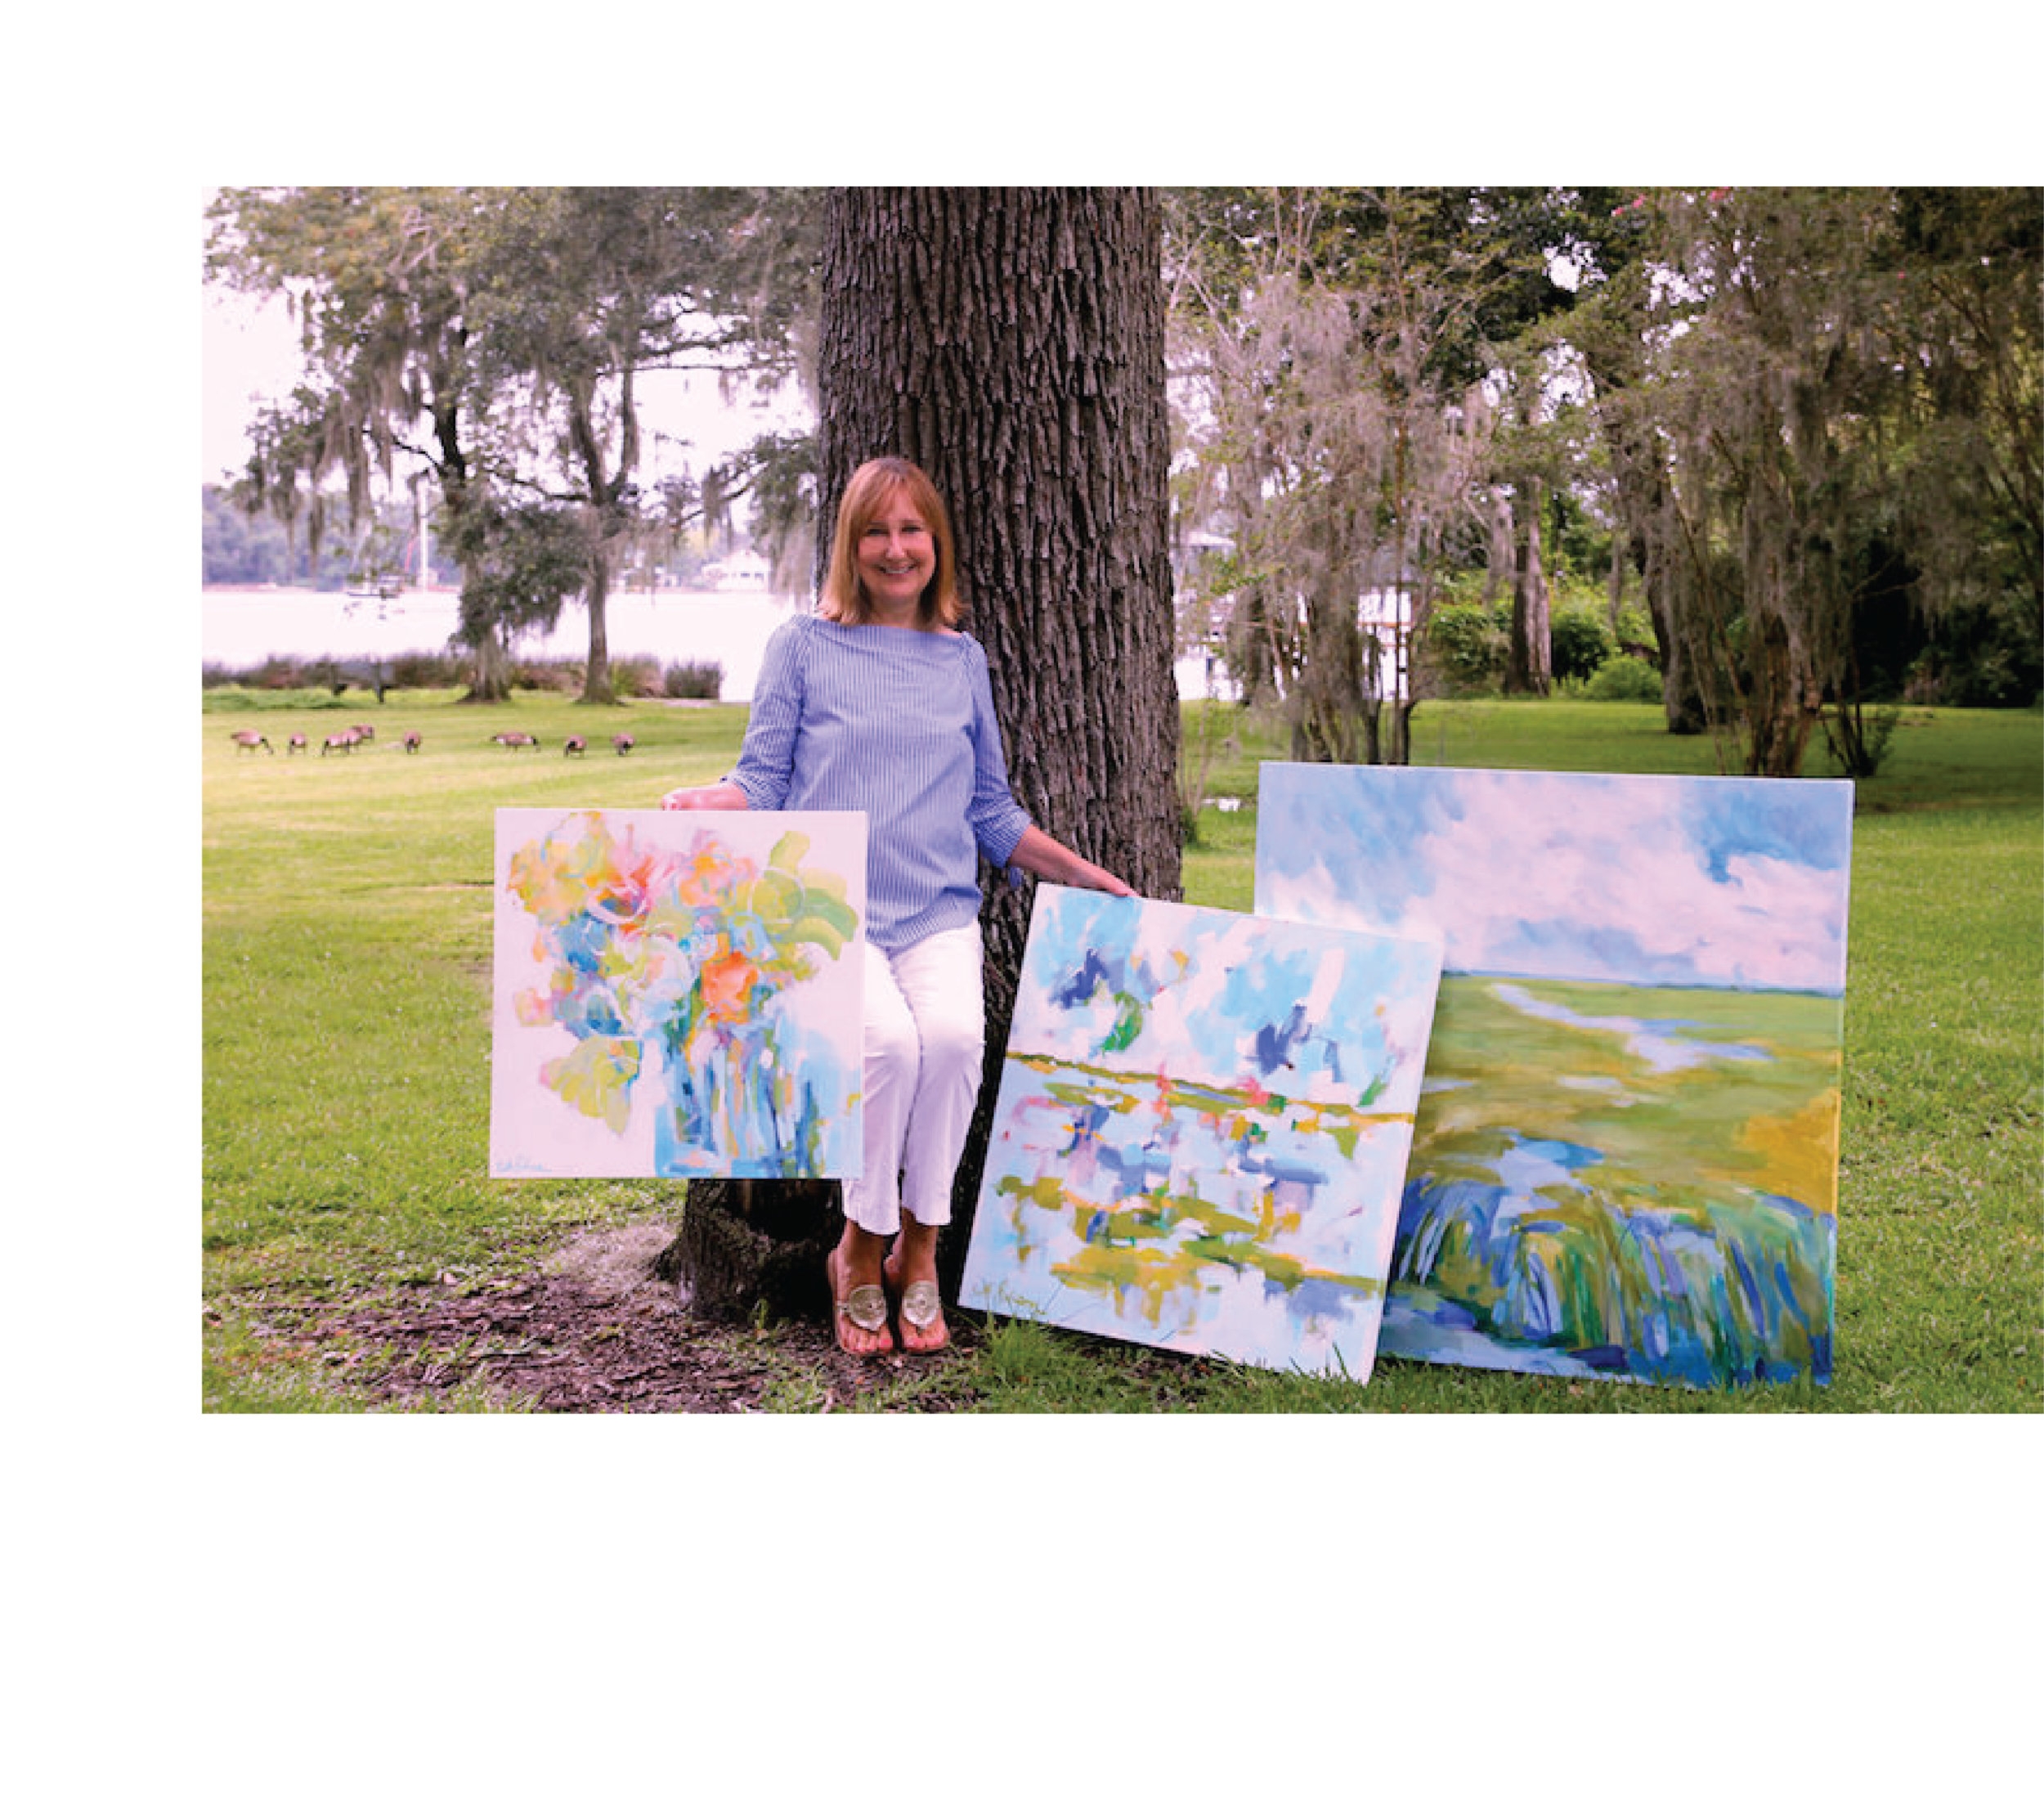 Beth Robison - Born in Jacksonville, Florida. Beth has always loved everything creative. In the fourth grade she discovered a love for painting. Beth attended Auburn University and Jacksonville University. When Beth's children were on their own, she returned to painting. Continuing her passion for art she participated in drawing, watercolor and oil workshops. Beth paints primarily in acrylic in her home studio and enjoys painting abstract florals and landscapes.REQUEST BETH ROBISON'S PORTFOLIO